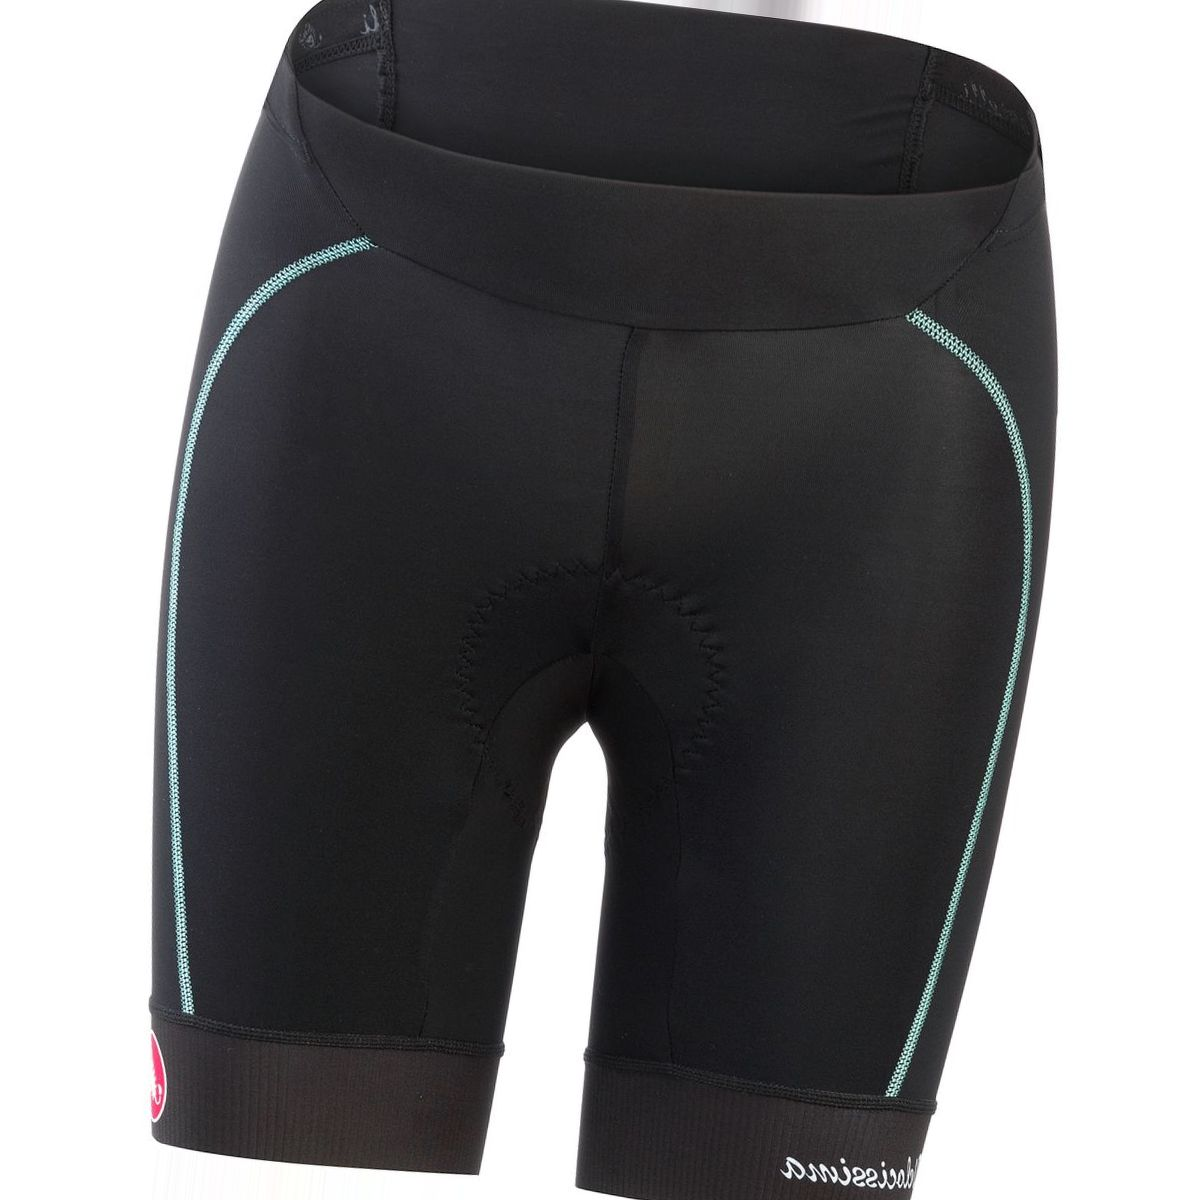 Castelli Velocissima Limited Edition Short - Women's